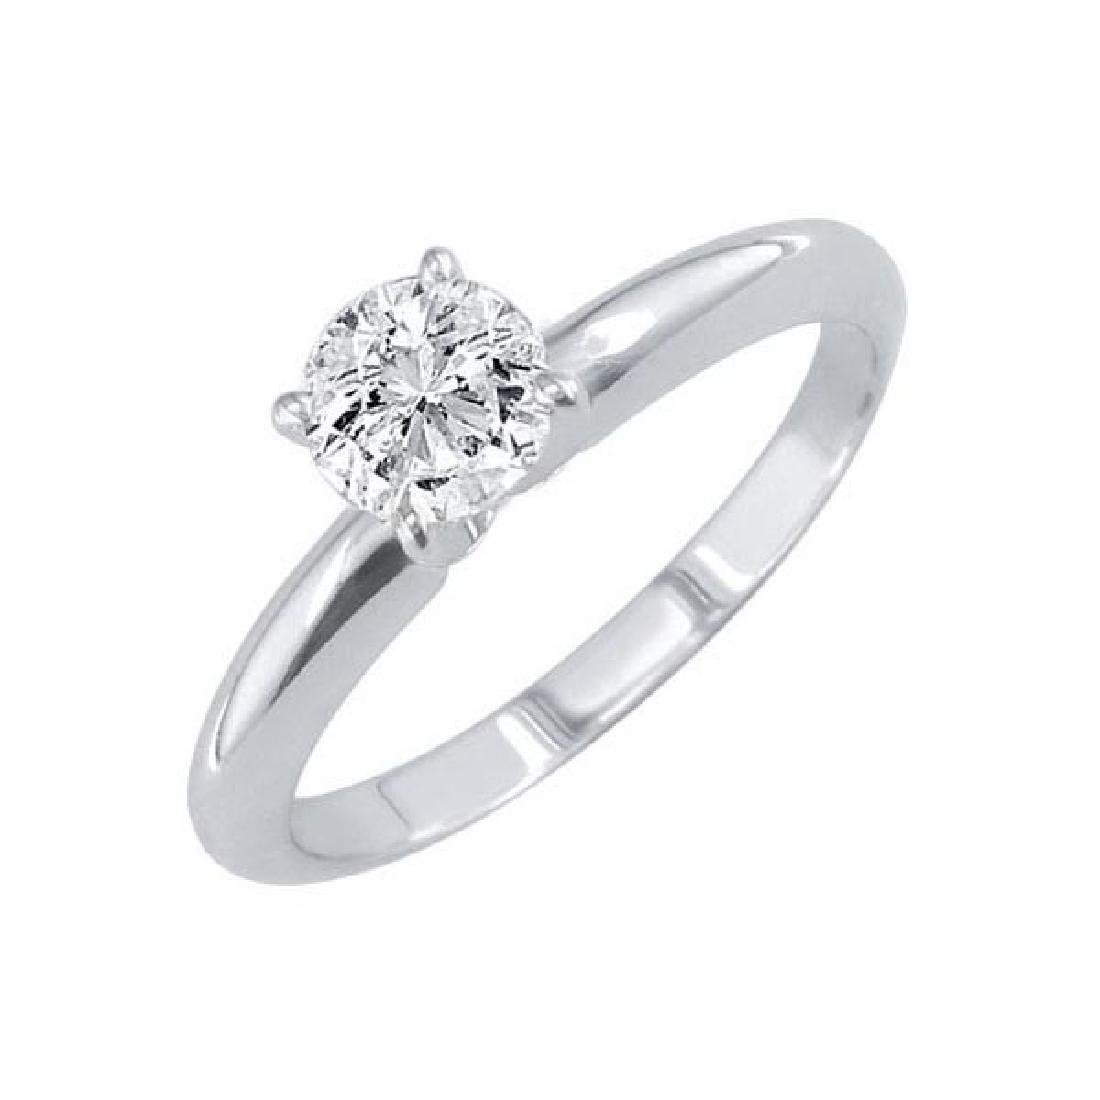 Certified 0.5 CTW Round Diamond Solitaire 14k Ring G/SI